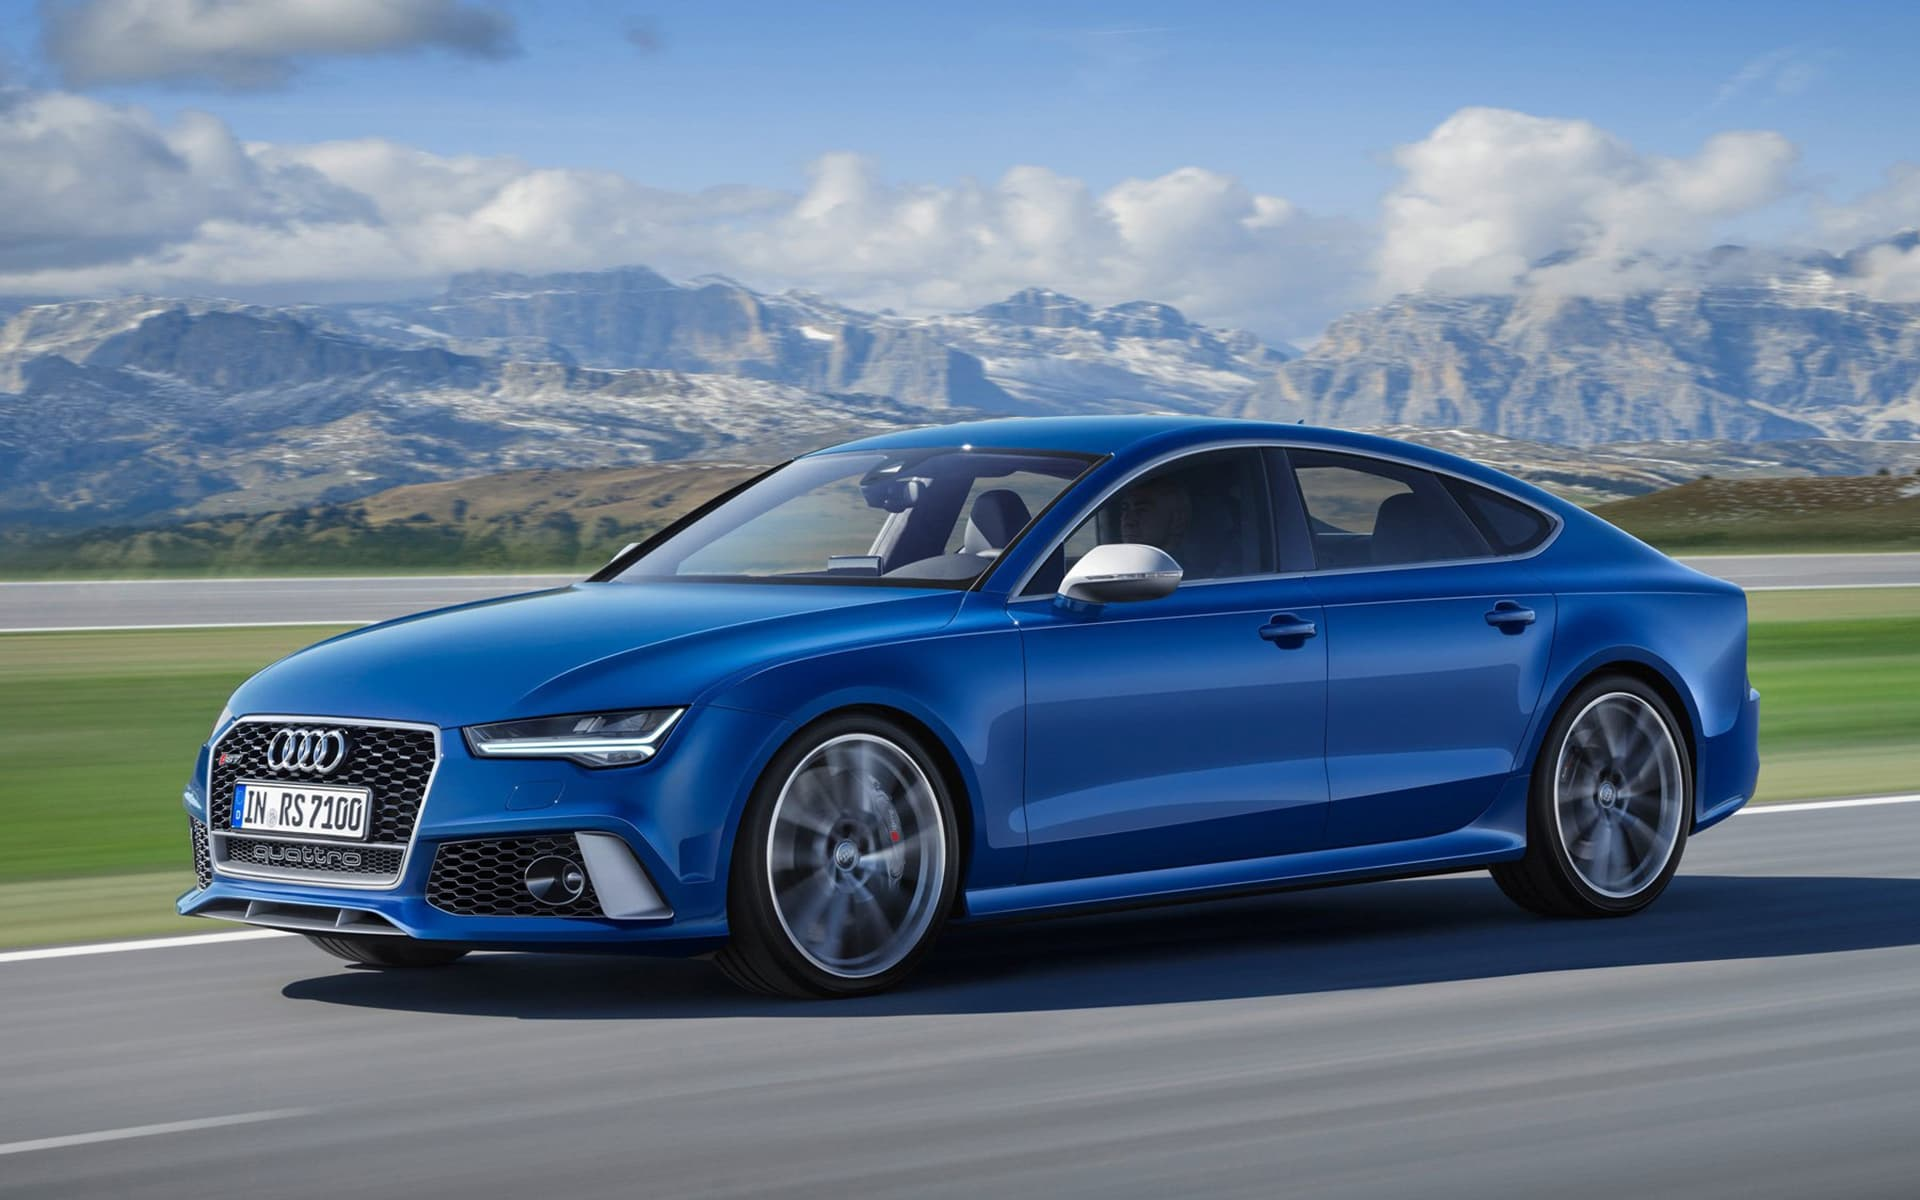 2016 Audi RS7 perfomance picture